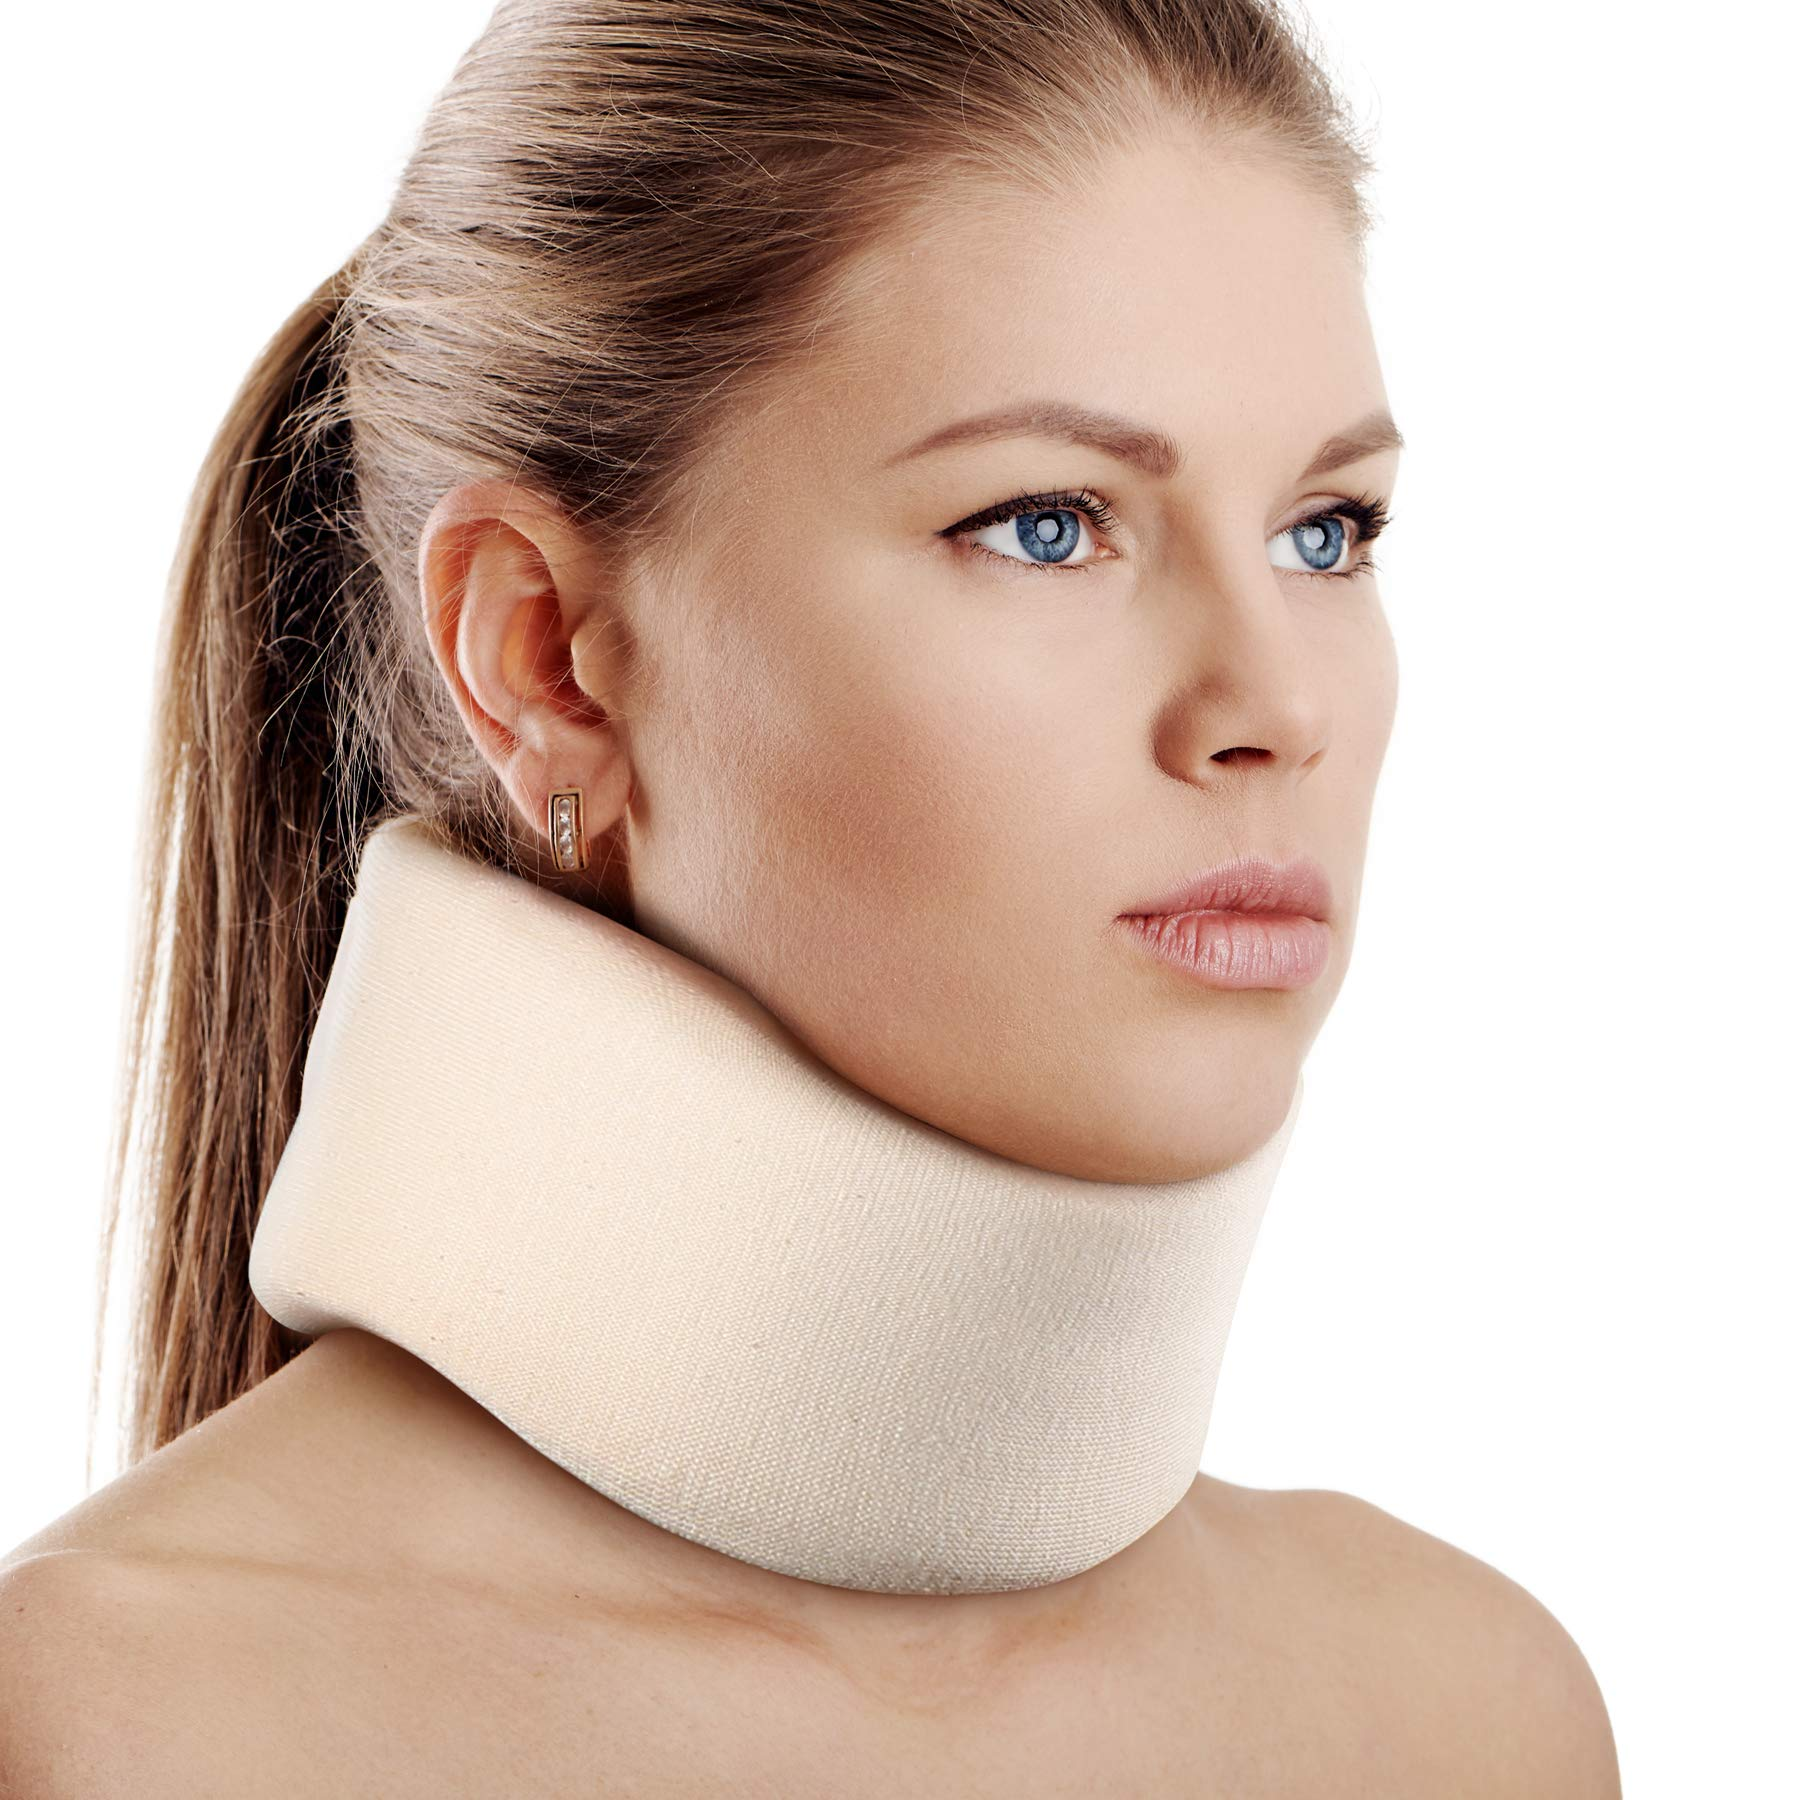 "Soft Foam Neck Brace Universal Cervical Collar, Adjustable Neck Support Brace for Sleeping - Relieves Neck Pain and Spine Pressure, Neck Collar After Whiplash or Injury (3"" Depth Collar, L)"